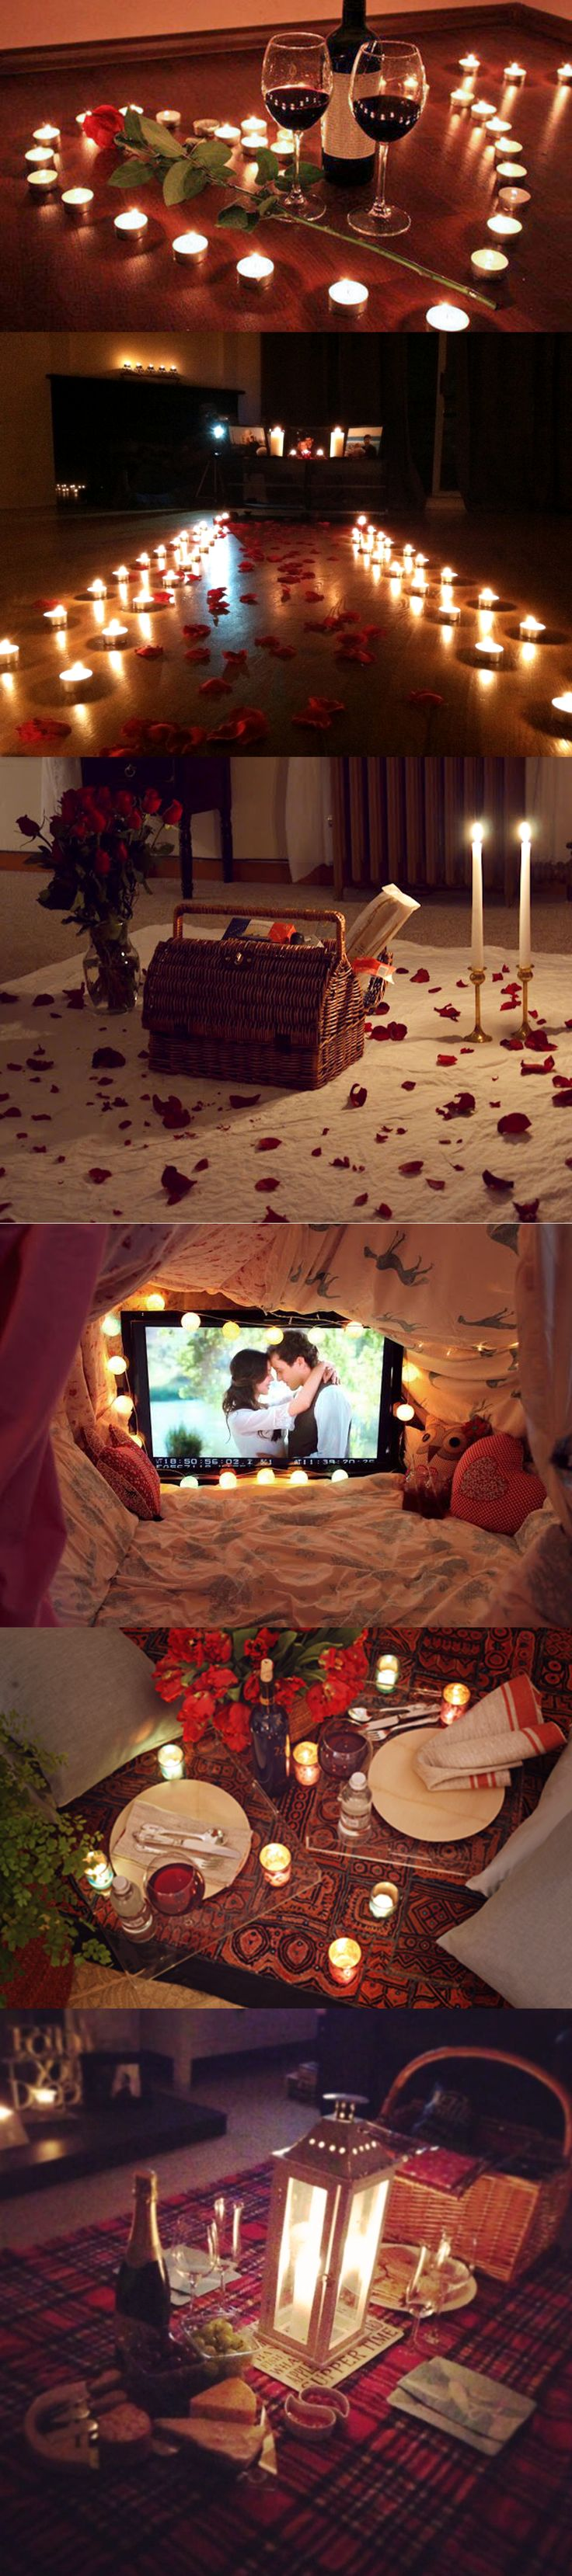 Romantic Hotel Room Ideas For Her Best 25 Romantic Surprise Ideas On Pinterest  Indoor Date Ideas